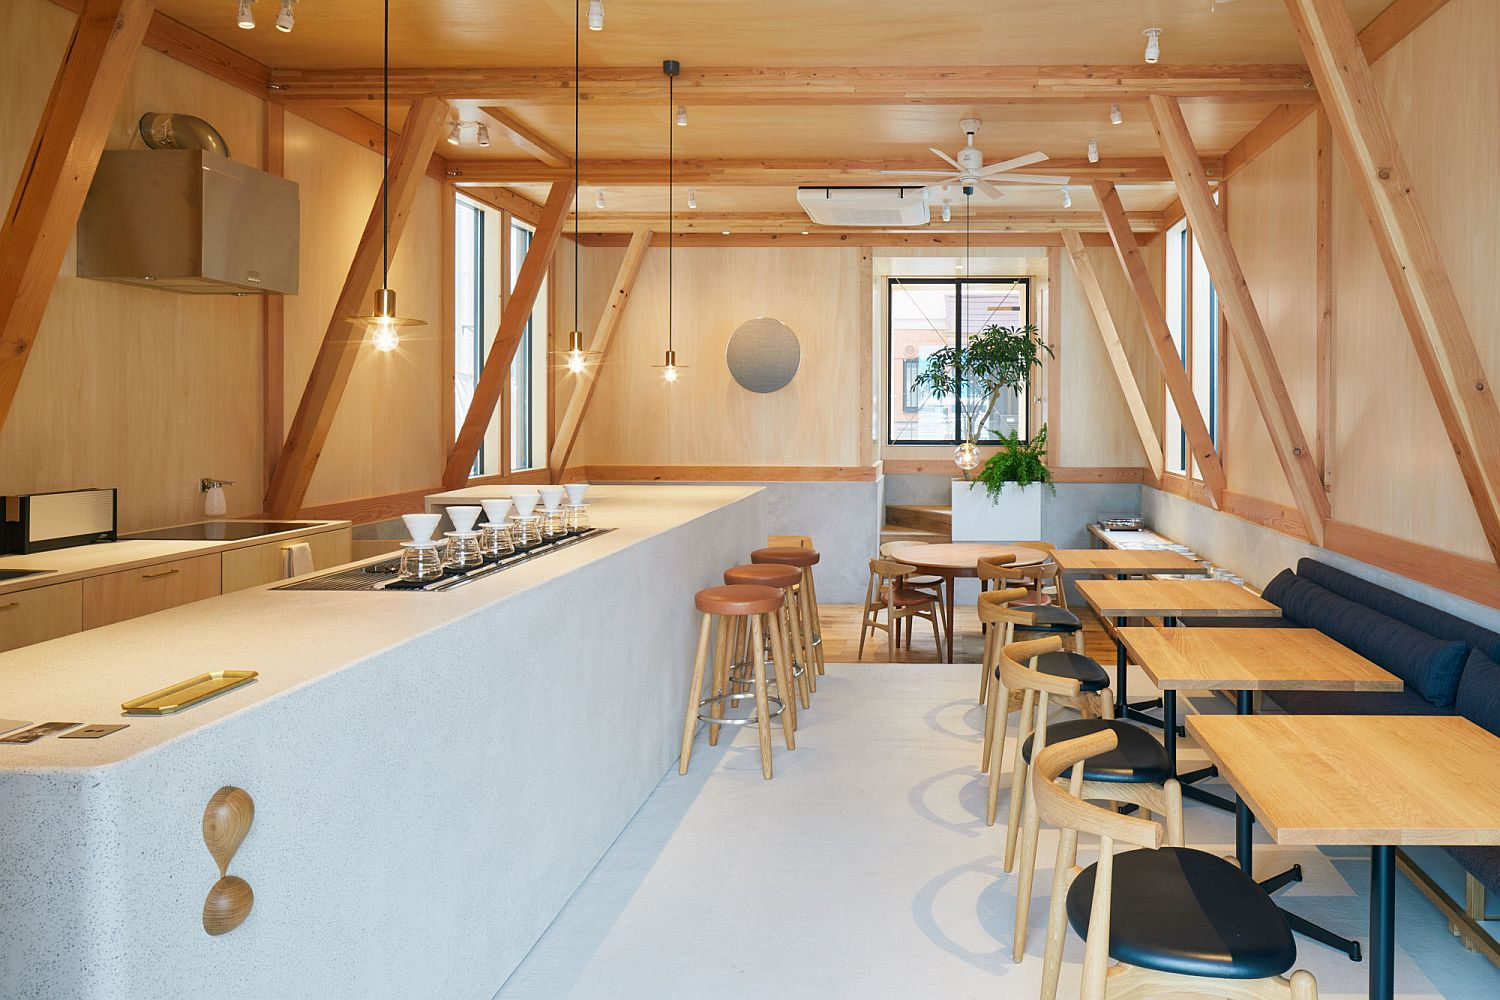 Modern Japanese Caf With A Cozy Residence Above Makes A